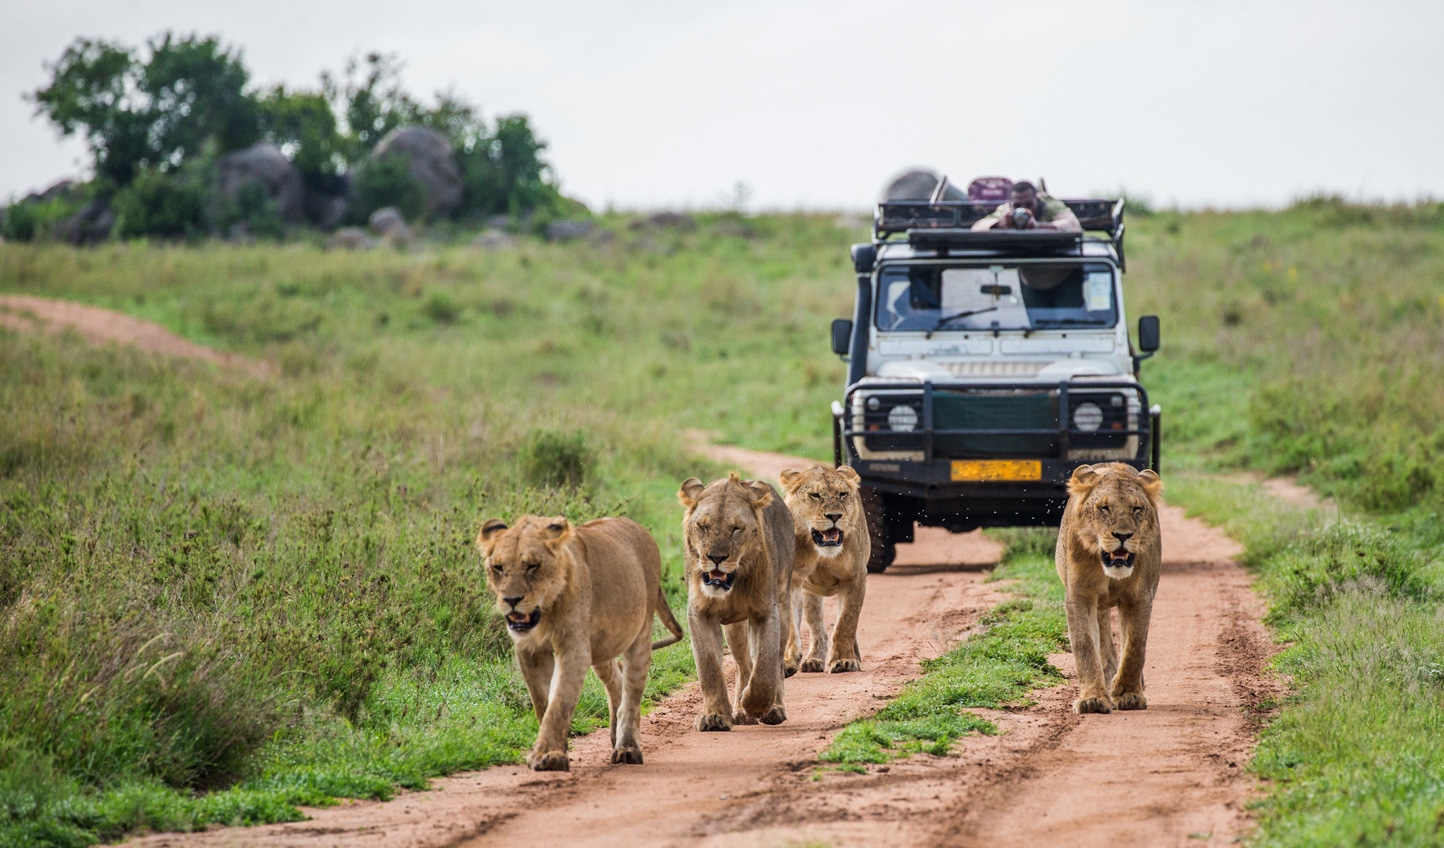 Master wildlife photography alongside the experts in a luxury photography safari